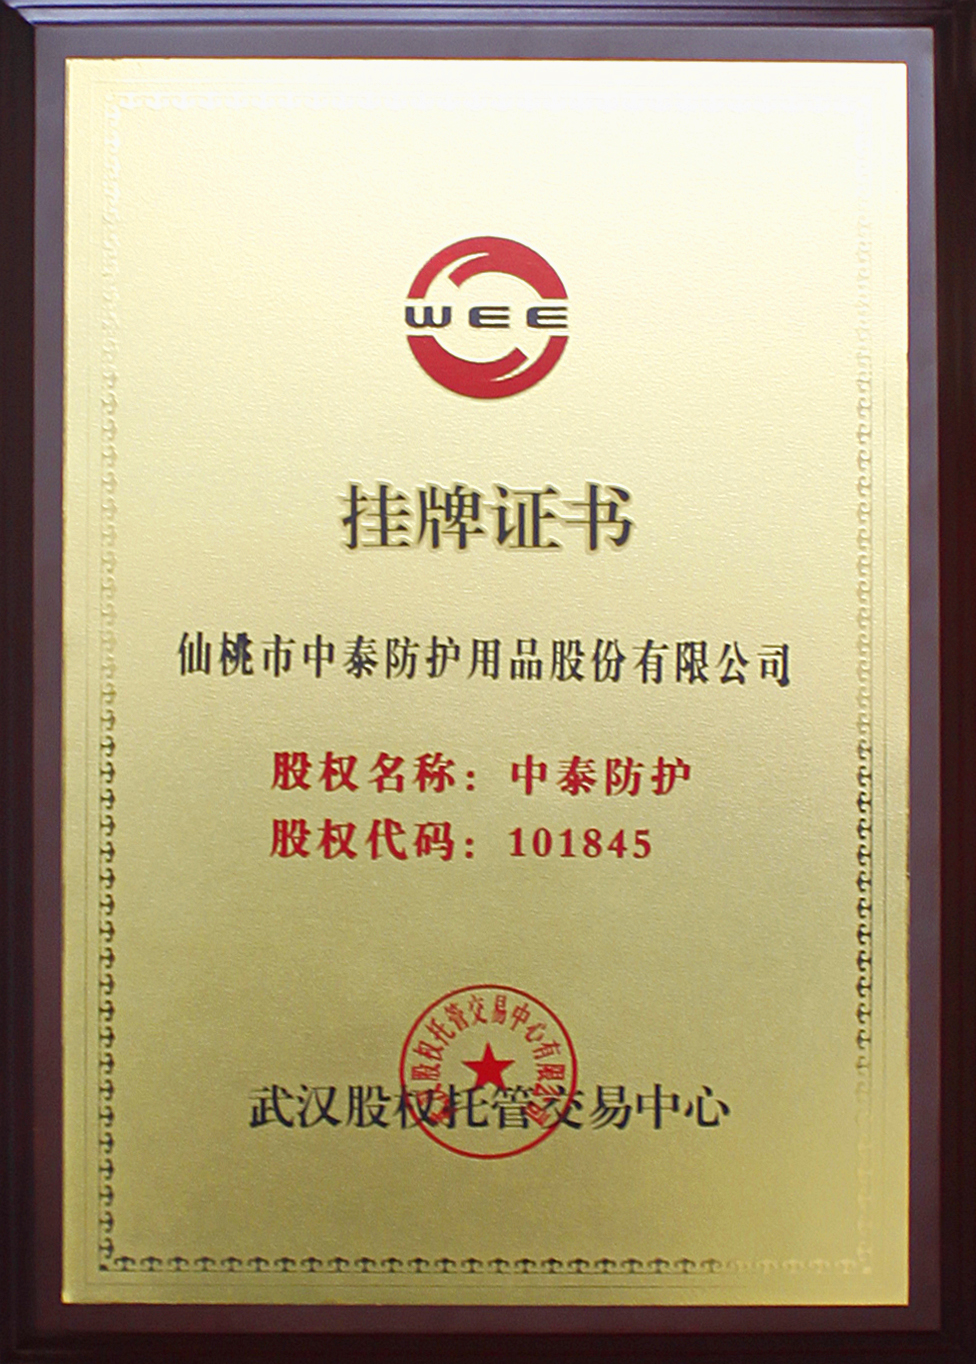 Listed enterprises certificate certification xiantao zhongtai listed enterprises certificate xflitez Choice Image